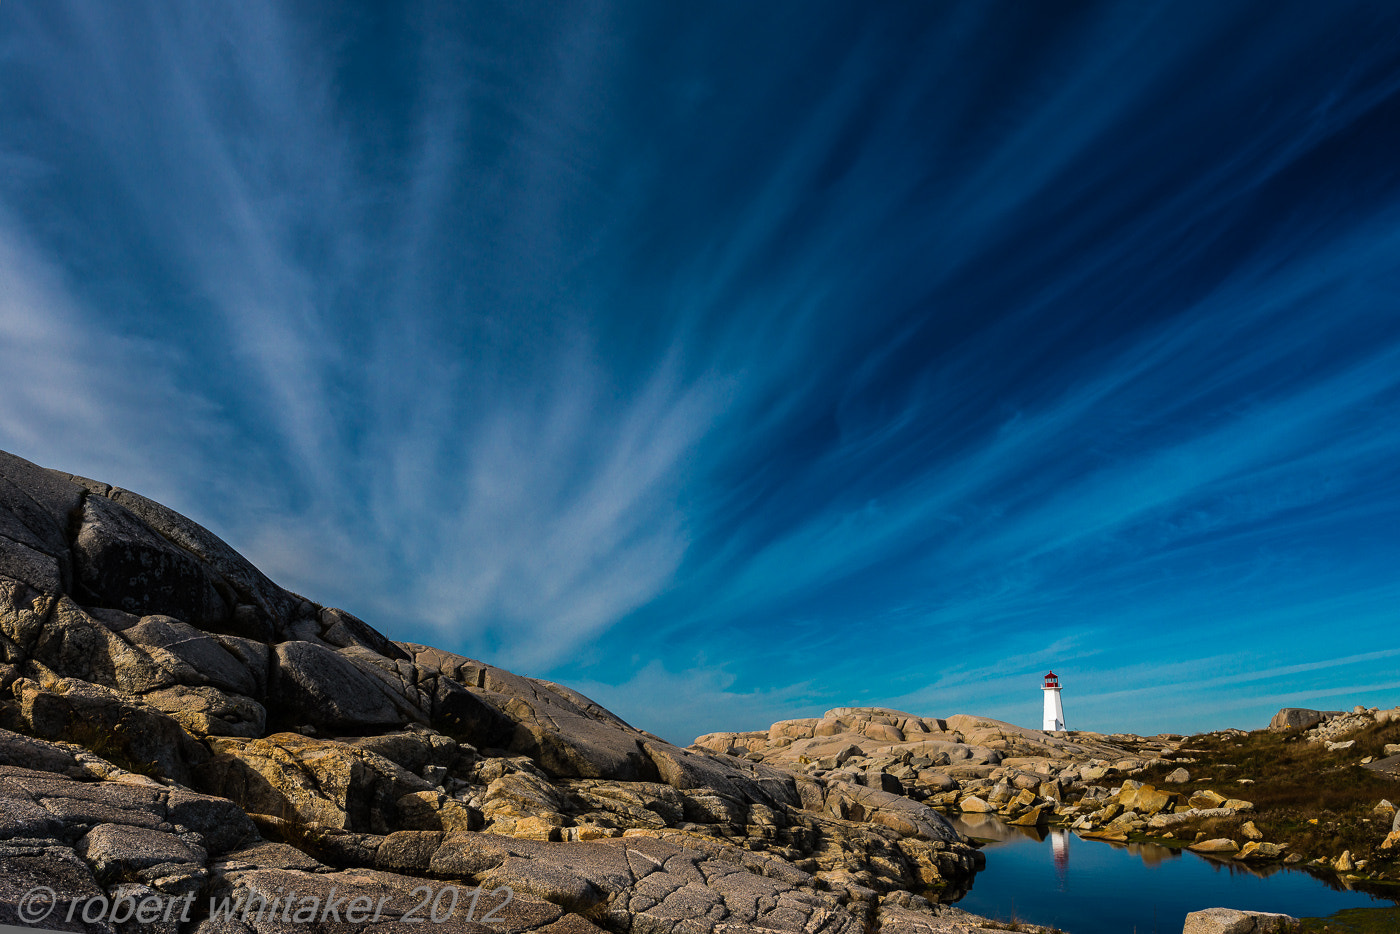 Photograph Peggy's Cove Nova Scotia by Robert Whitaker on 500px